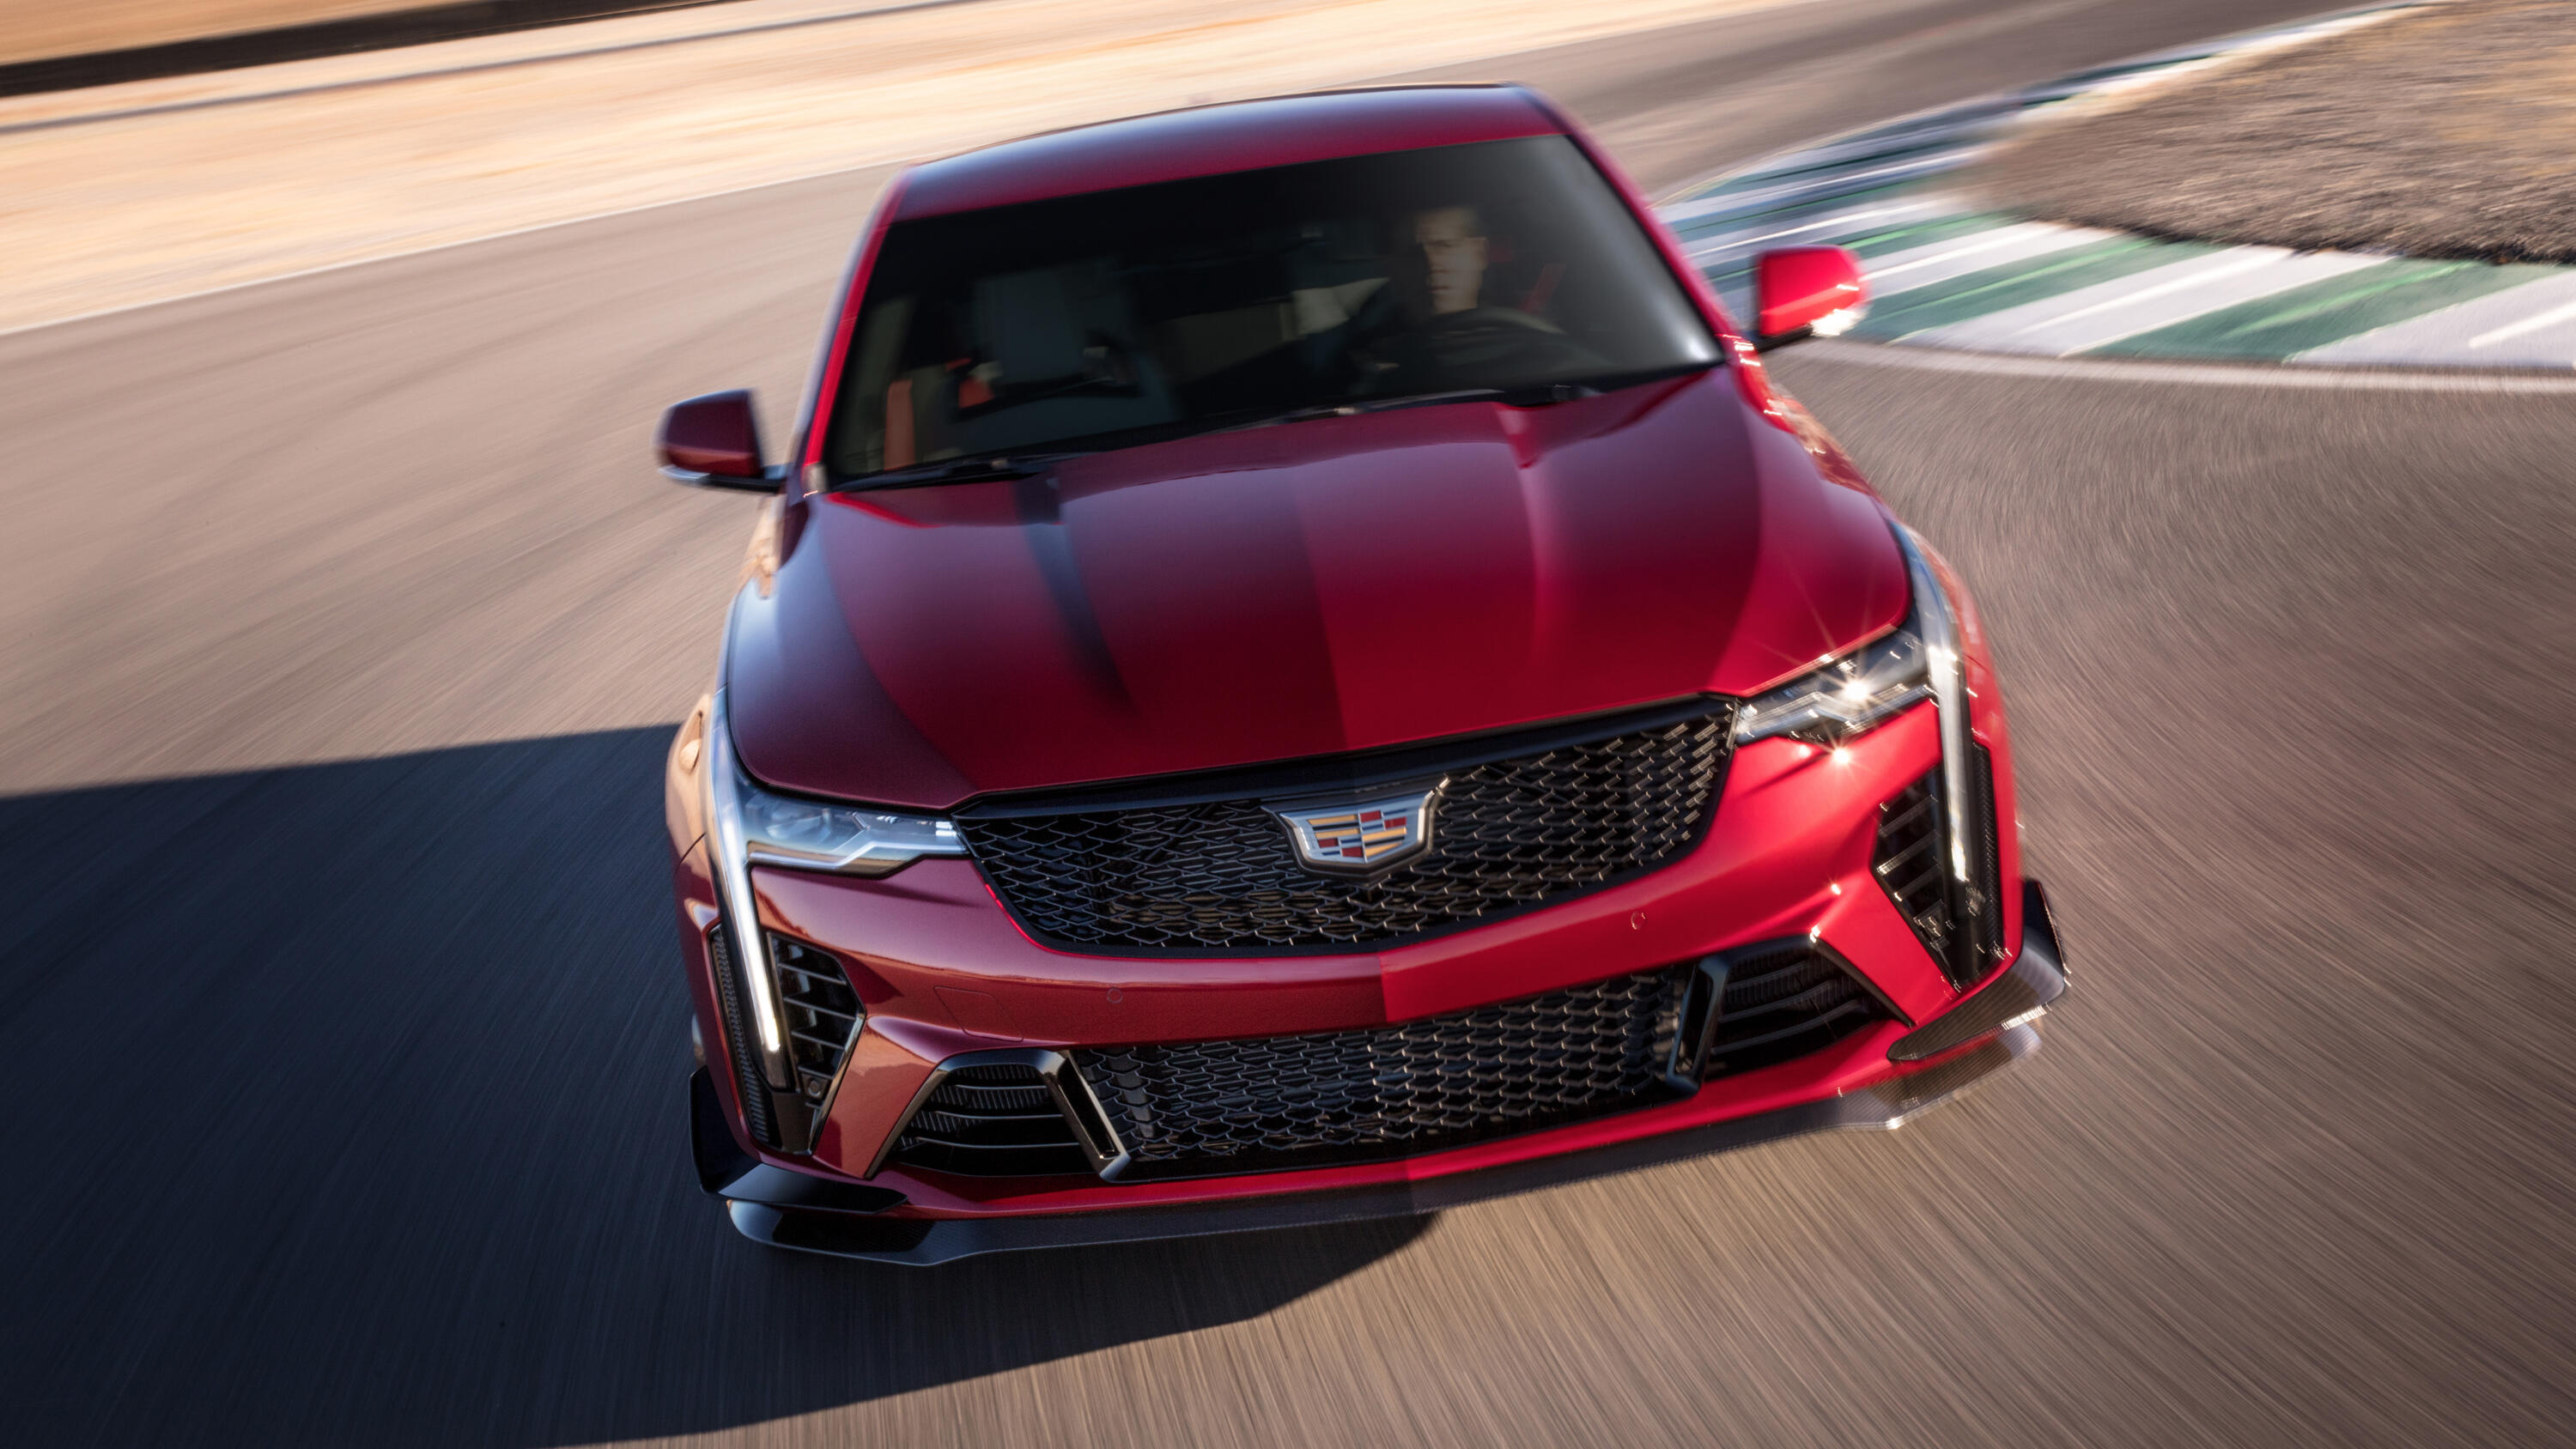 Video: 2022 Cadillac CT4-V and CT5-V Blackwing cars deliver world-beating performance